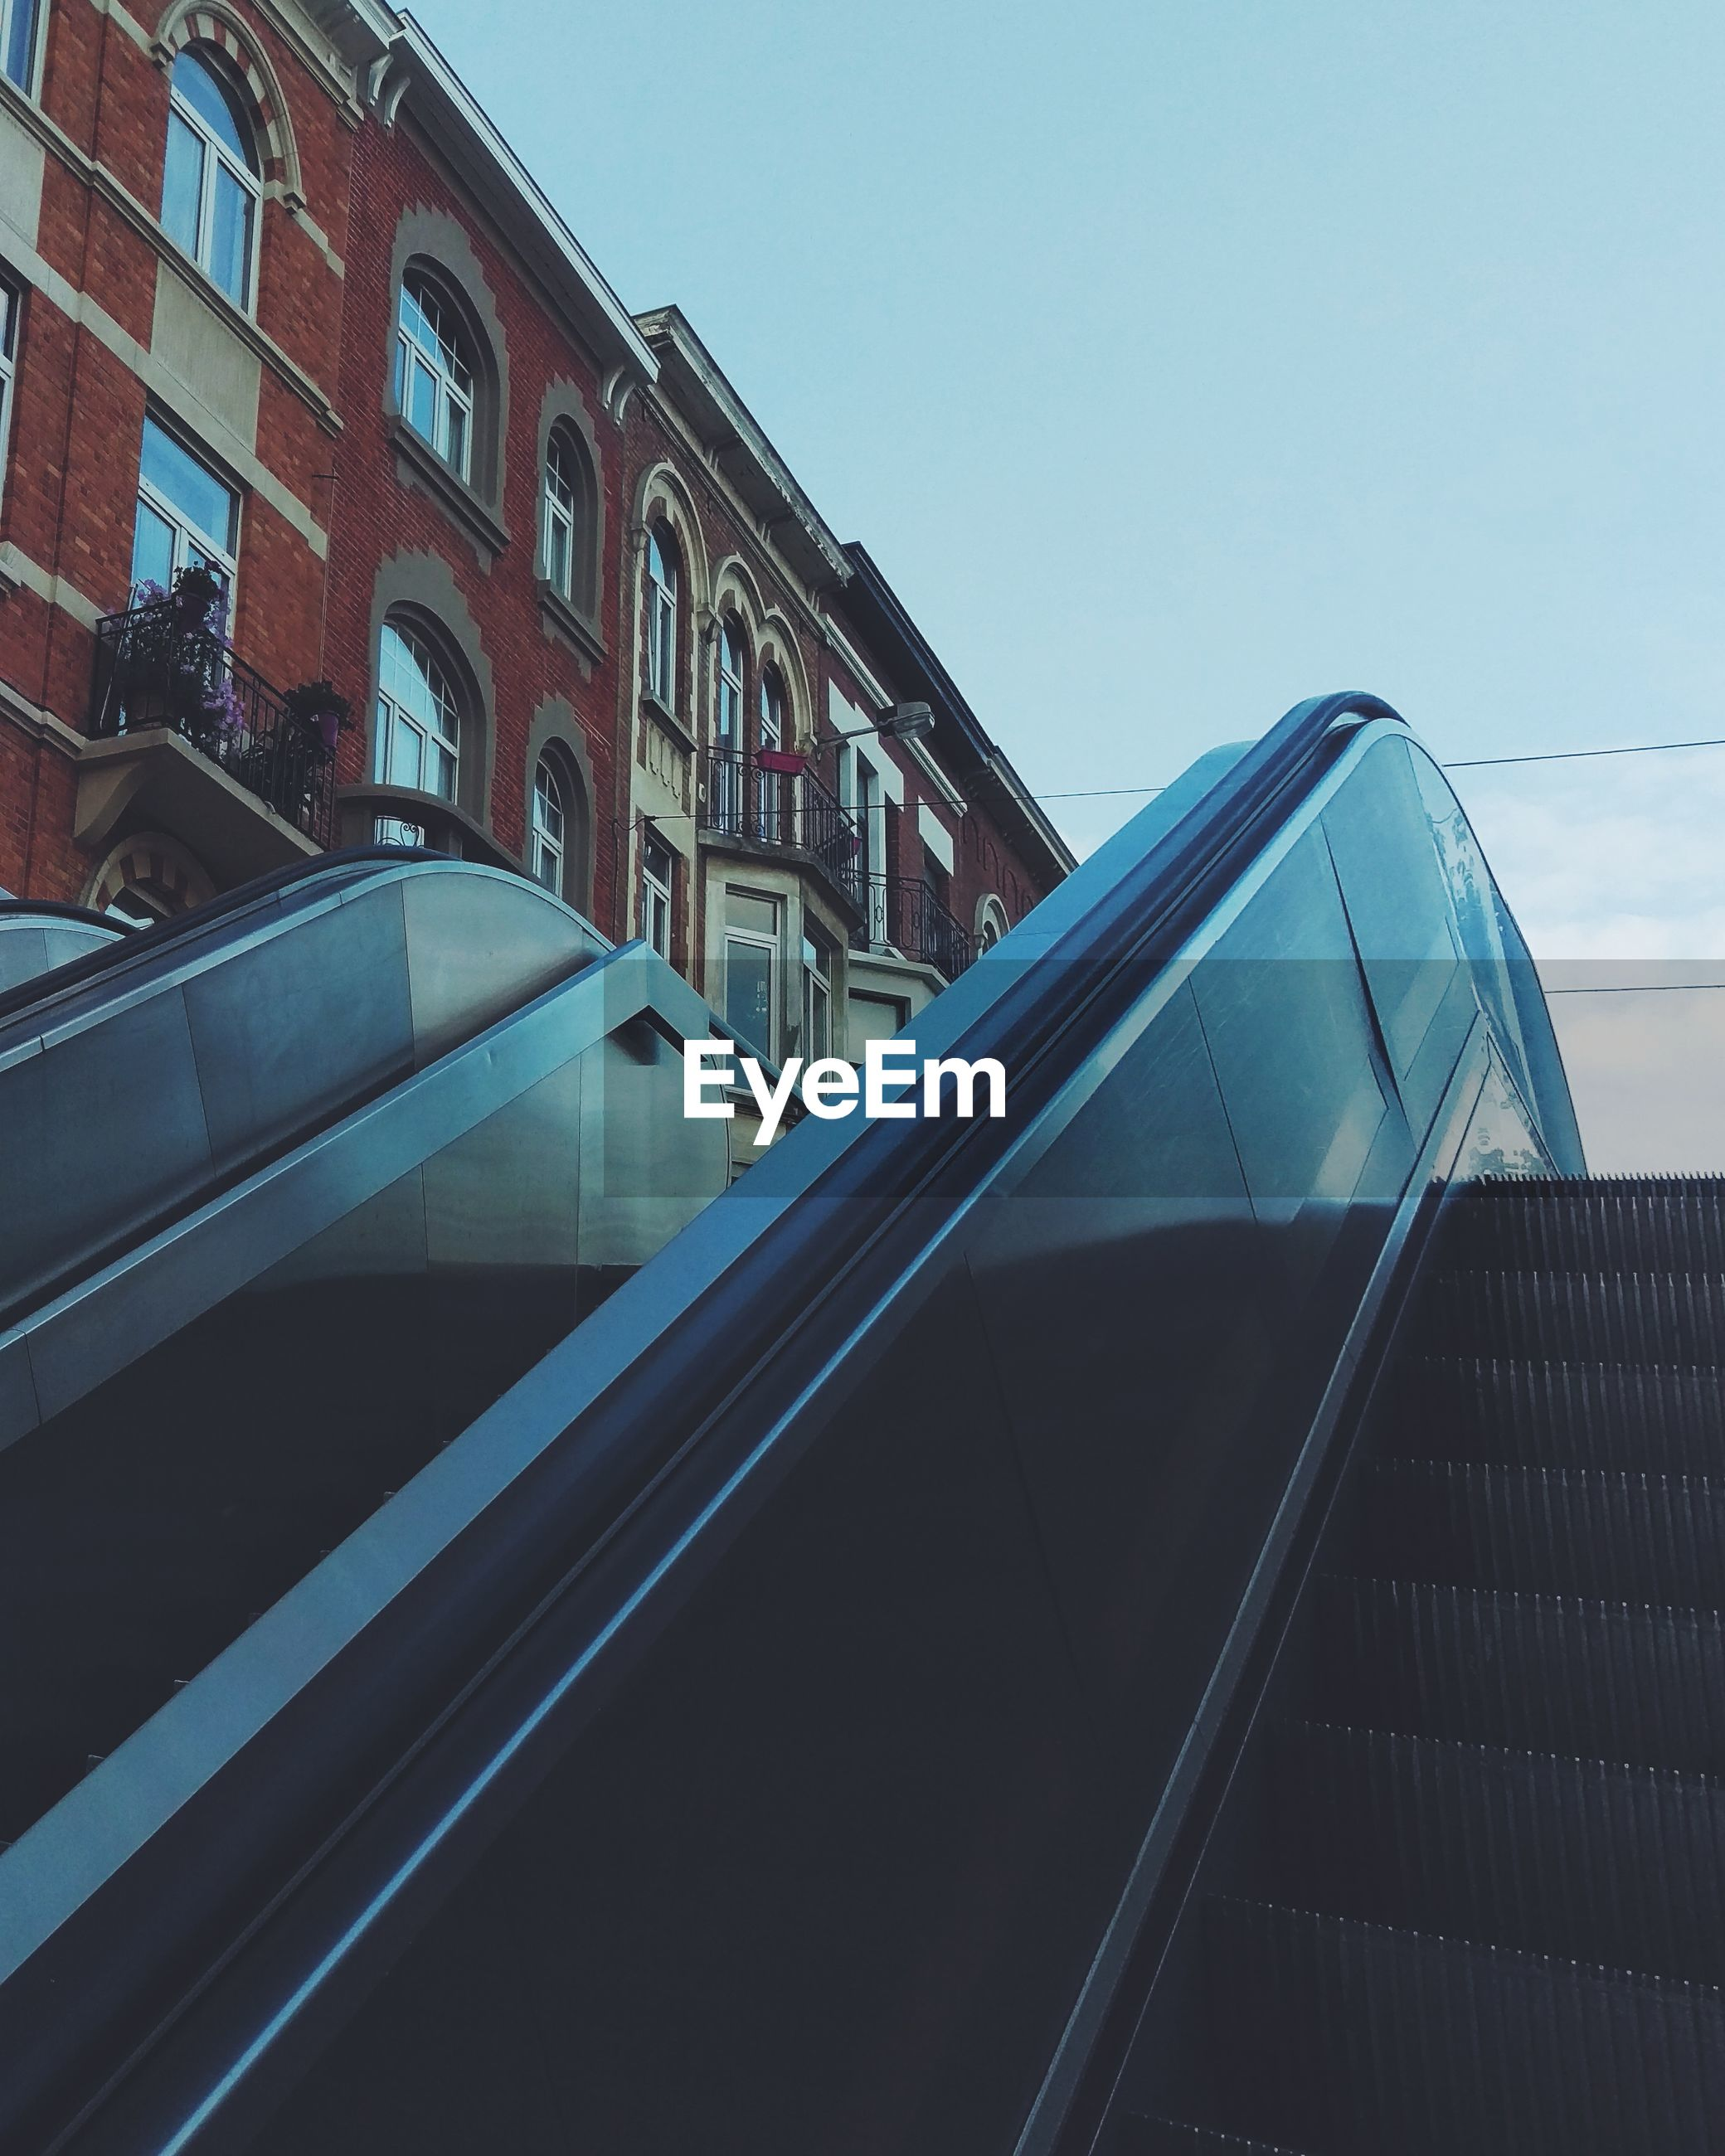 Low angle view of escalator by building against sky